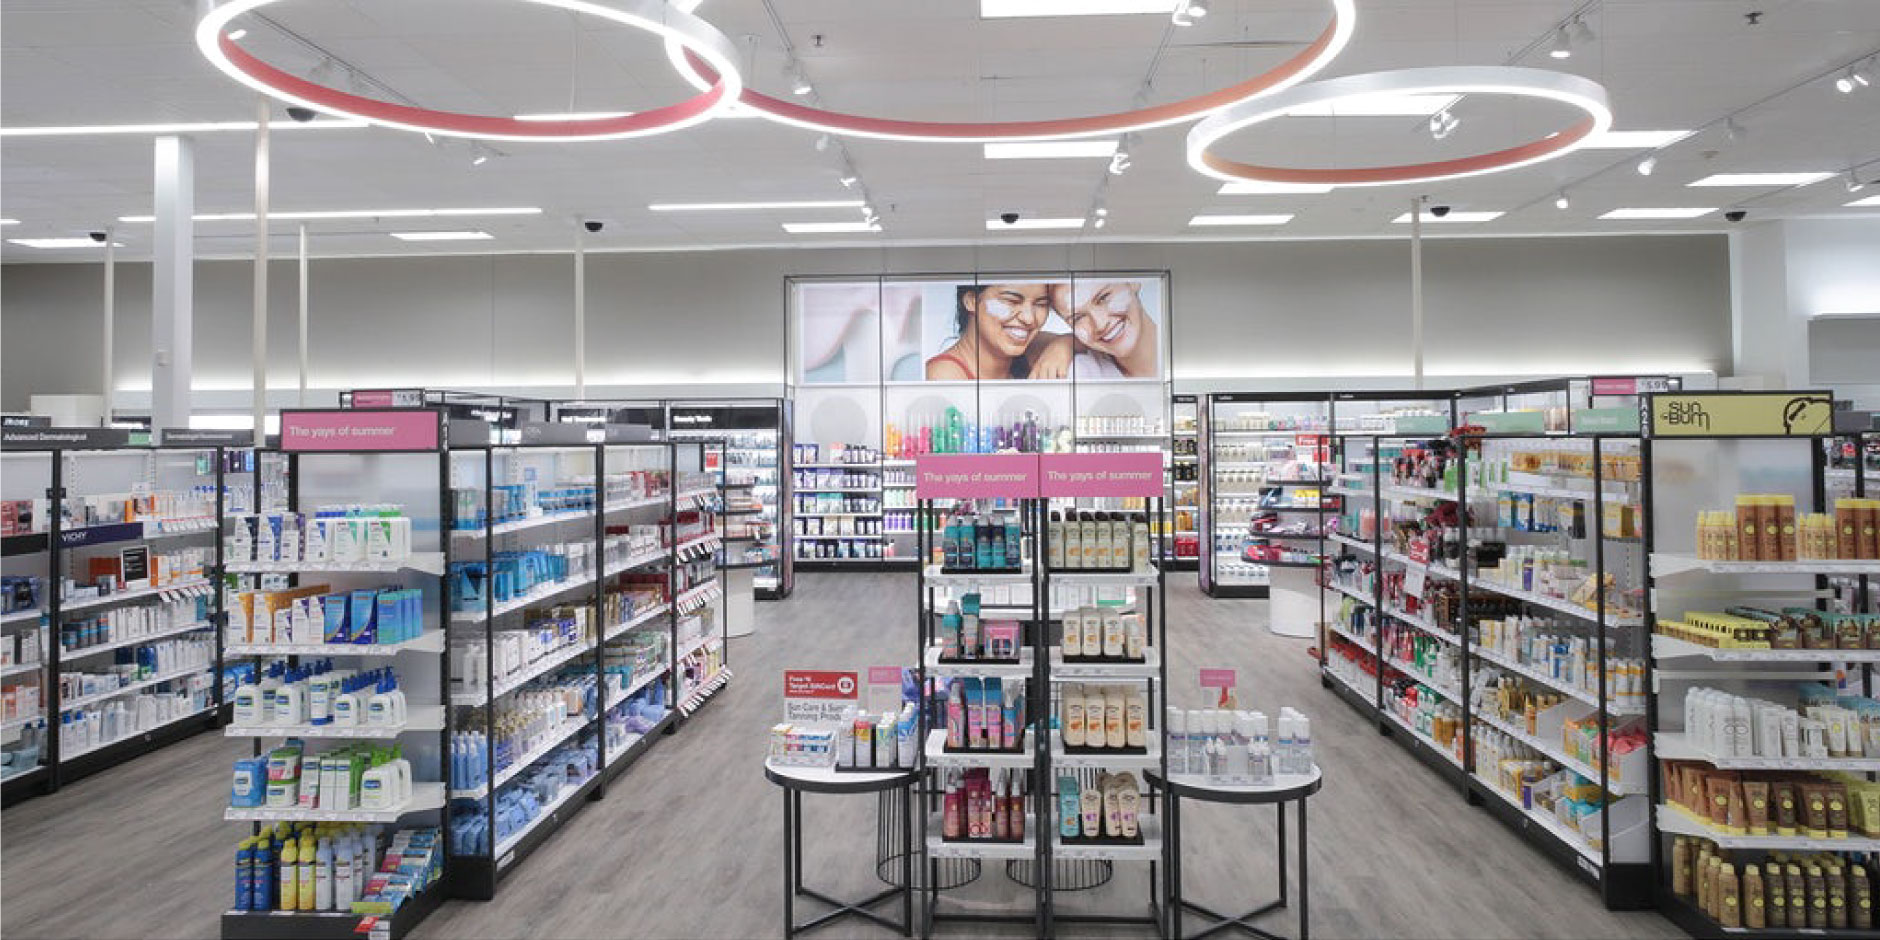 A full, colorful display of beauty and grooming products in a Target store